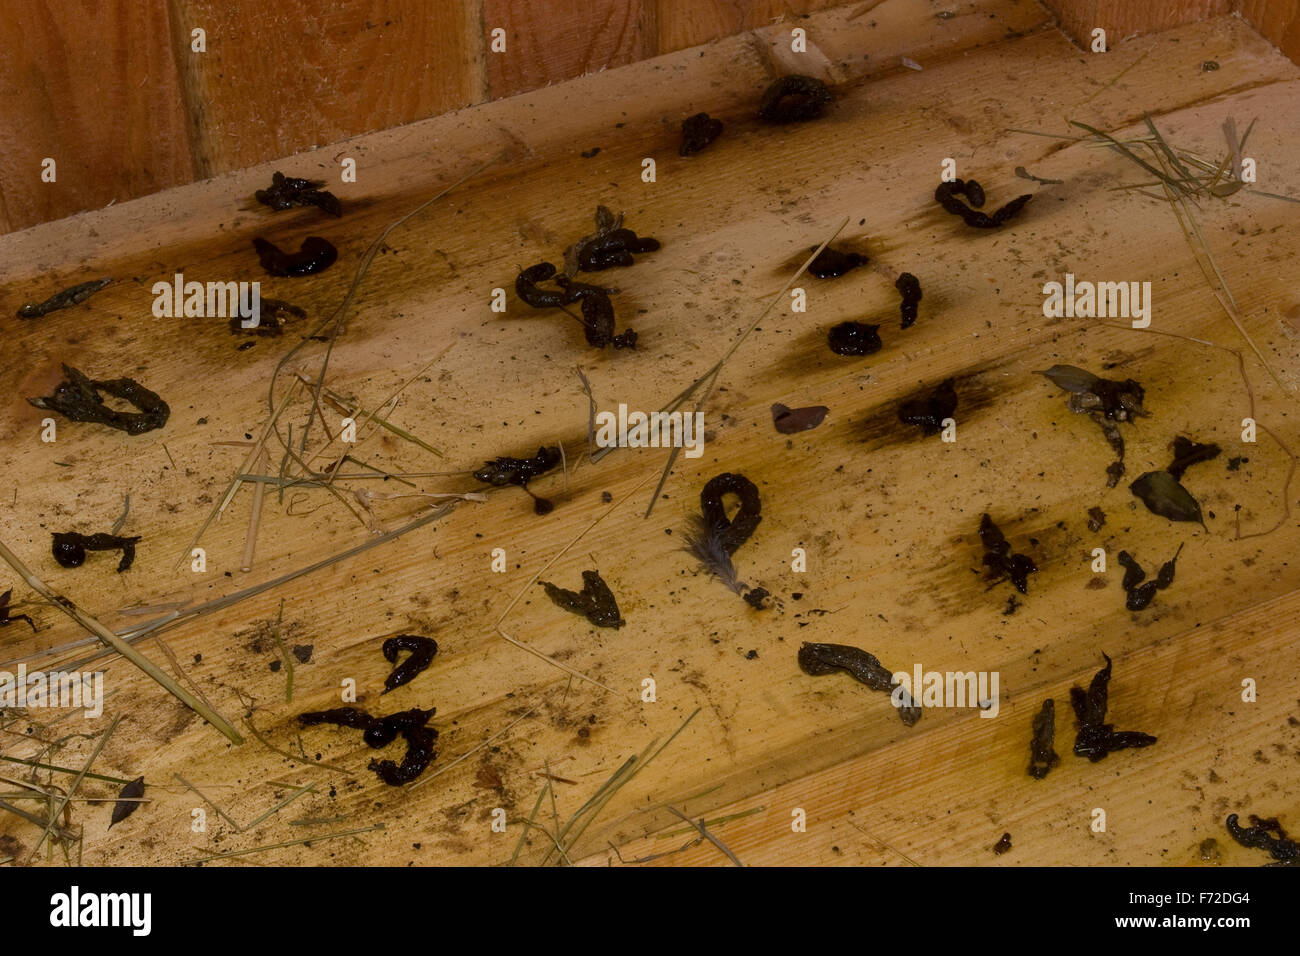 western polecat european polecat dirt excrement faeces iltis stock photo royalty free. Black Bedroom Furniture Sets. Home Design Ideas